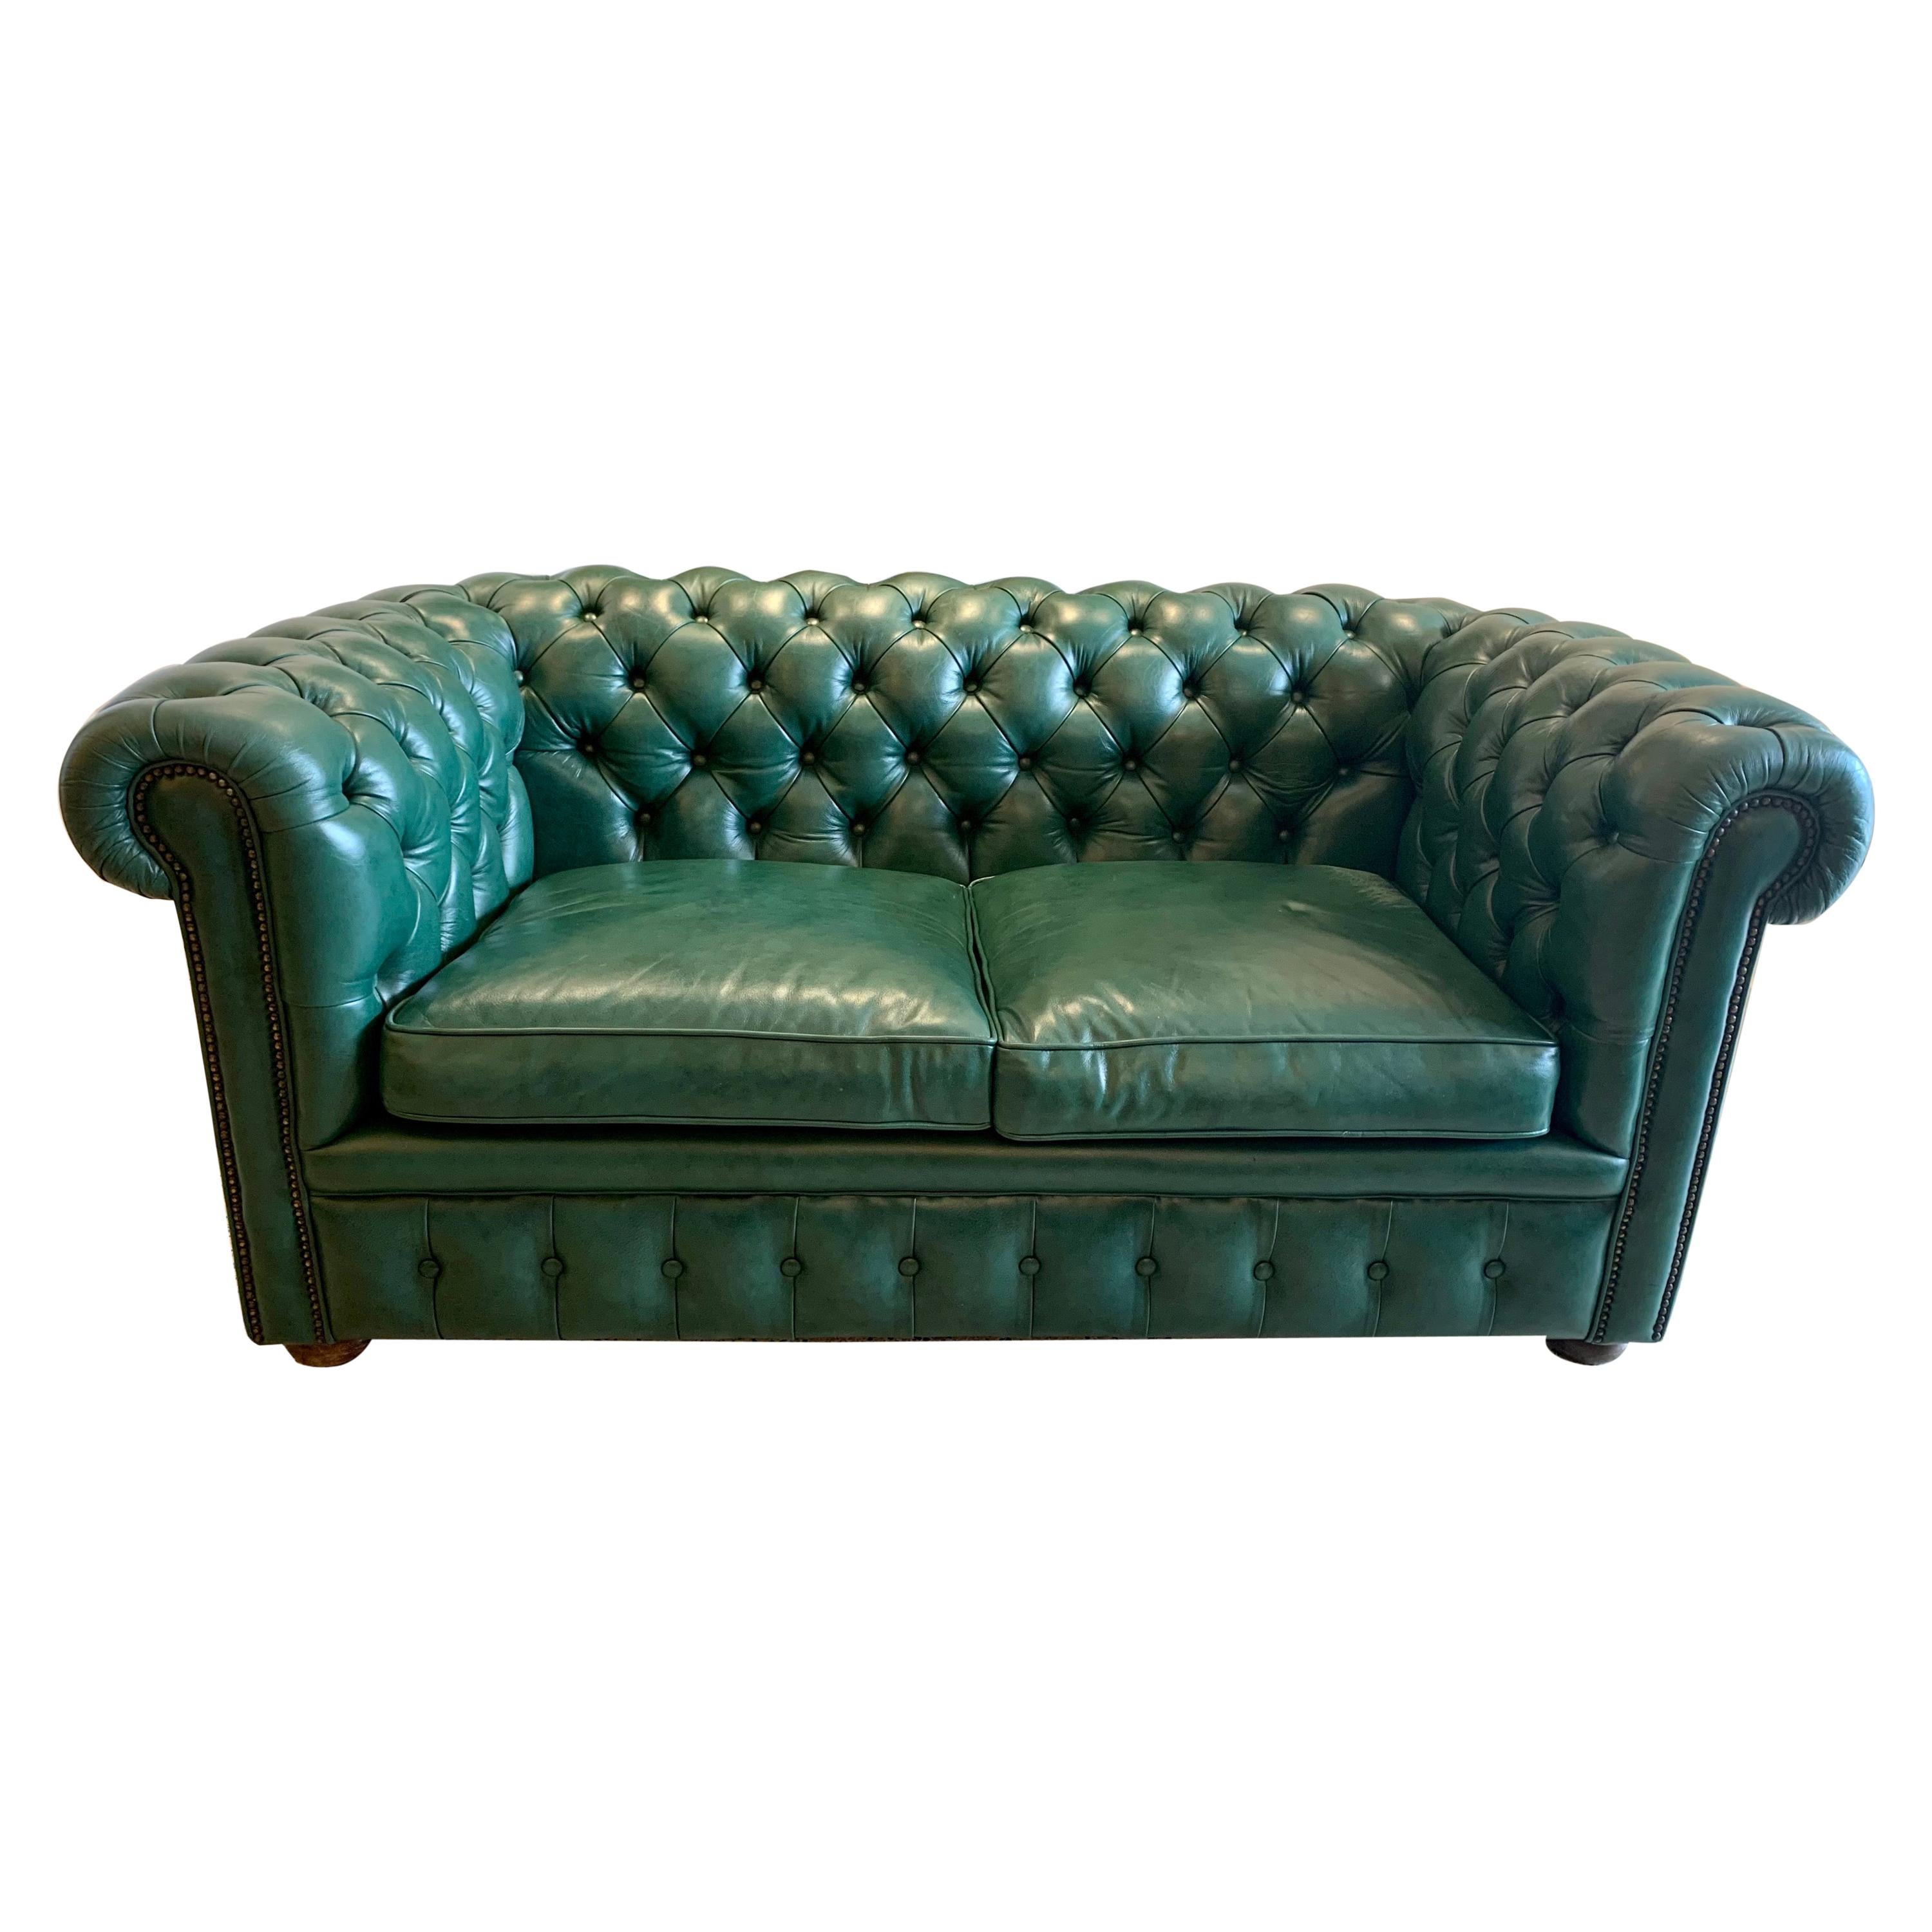 Original English Hunter Green Chesterfield Leather Two-Seat Sofa